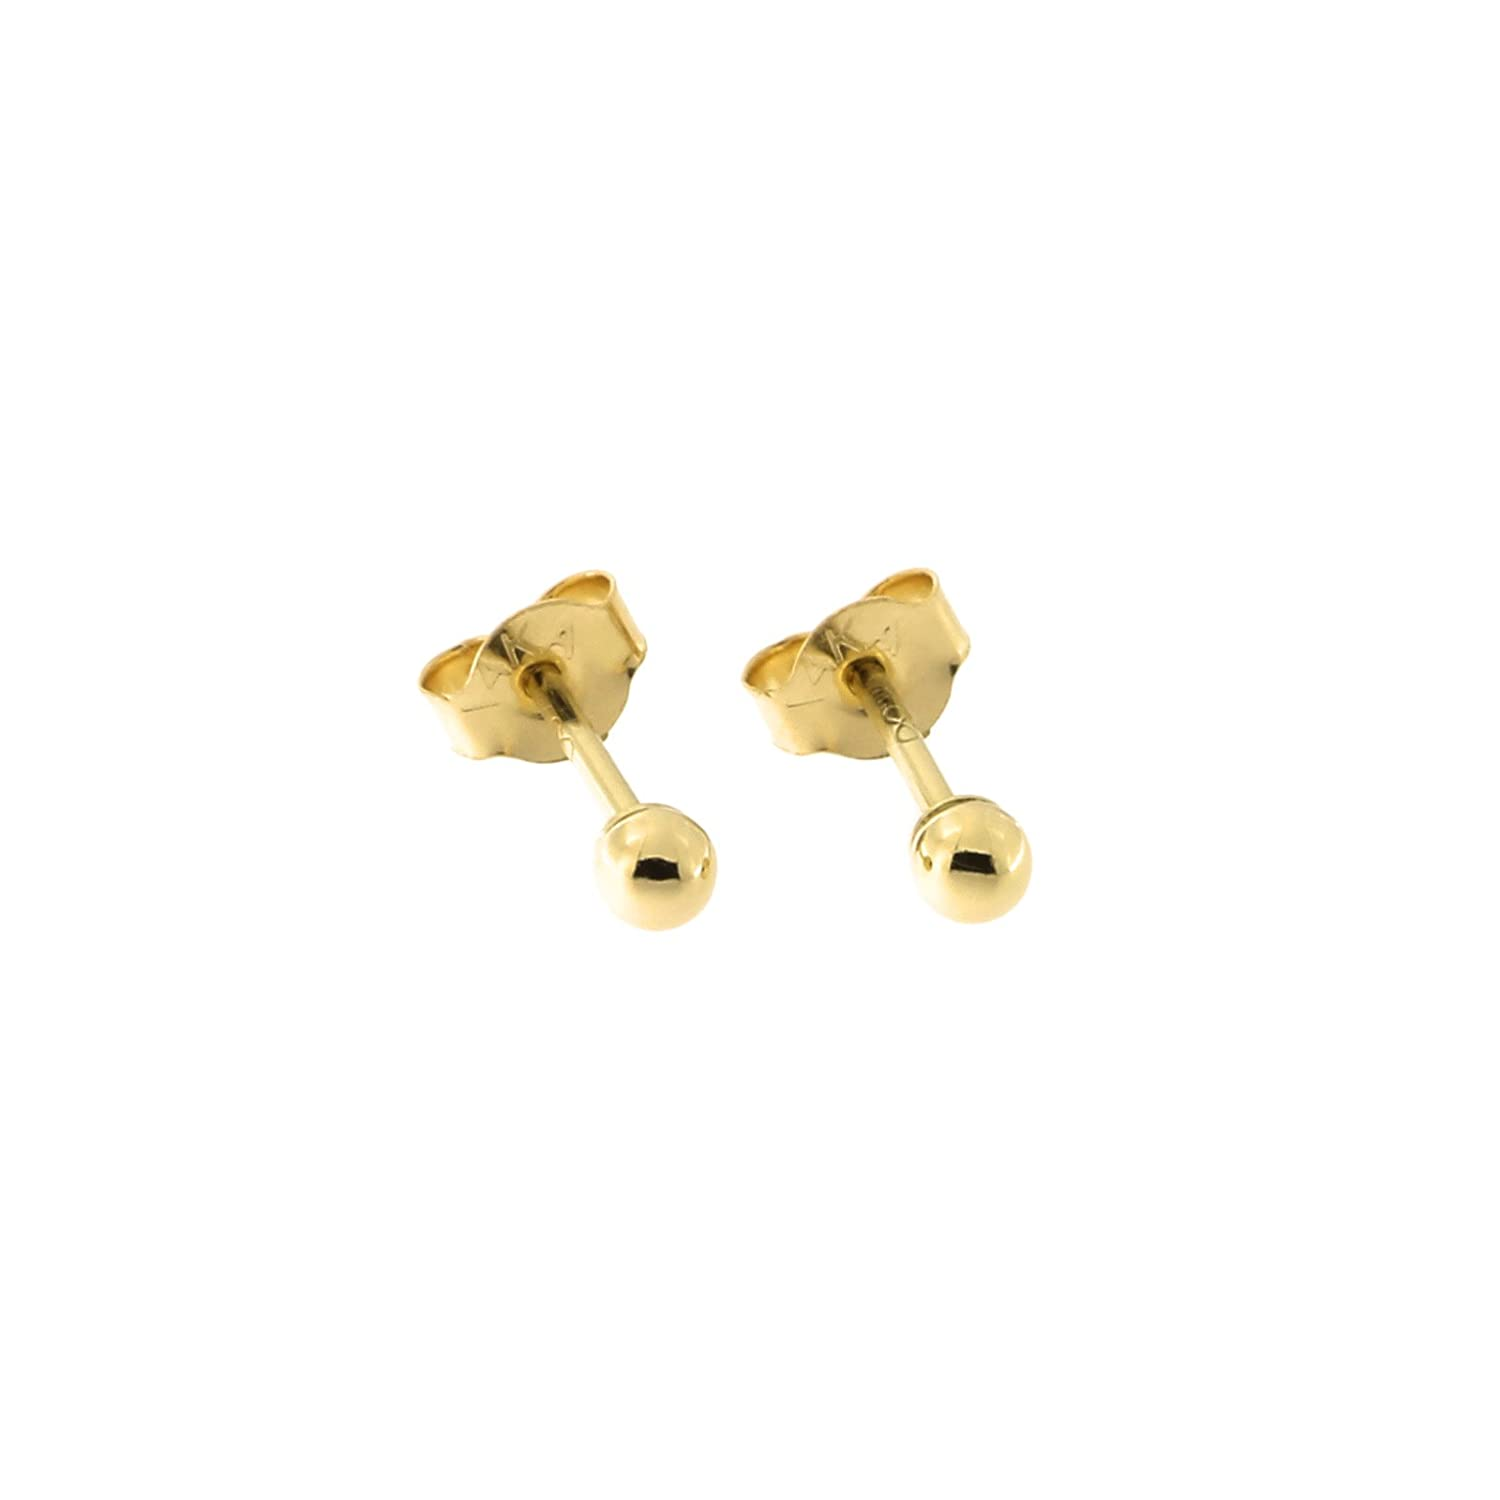 room yellow l plumb gold property stud karat earrings knob